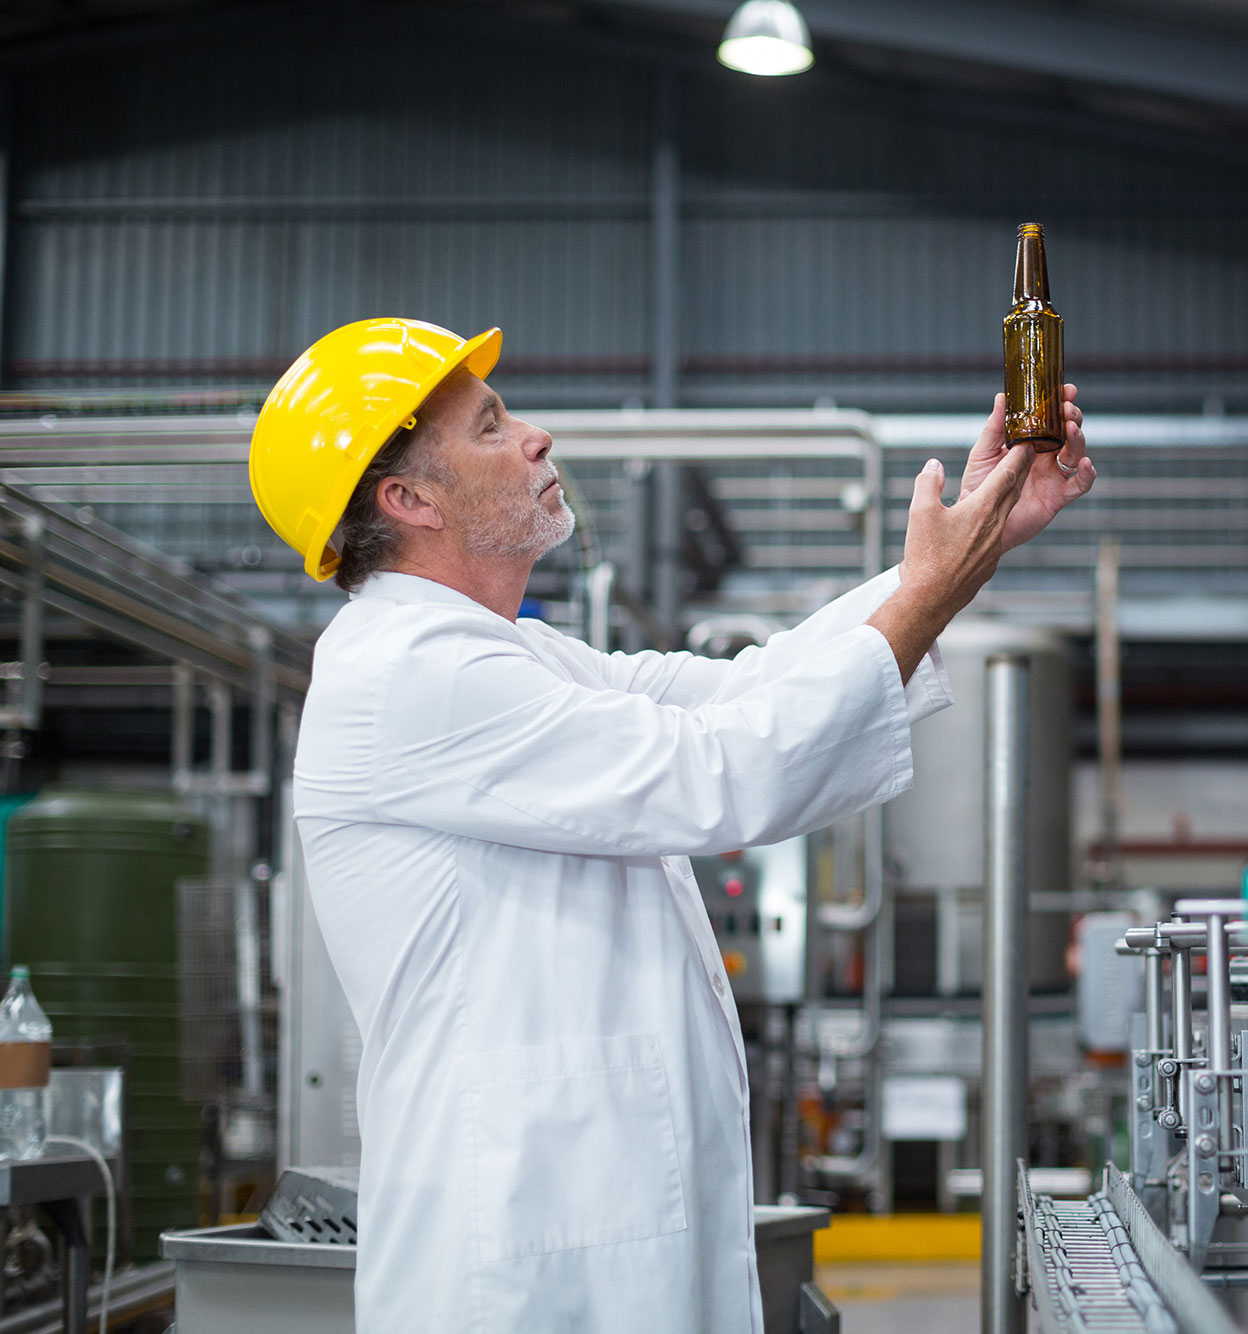 factory-worker-examining-a-bottle-in-factory-A38VZS9-2